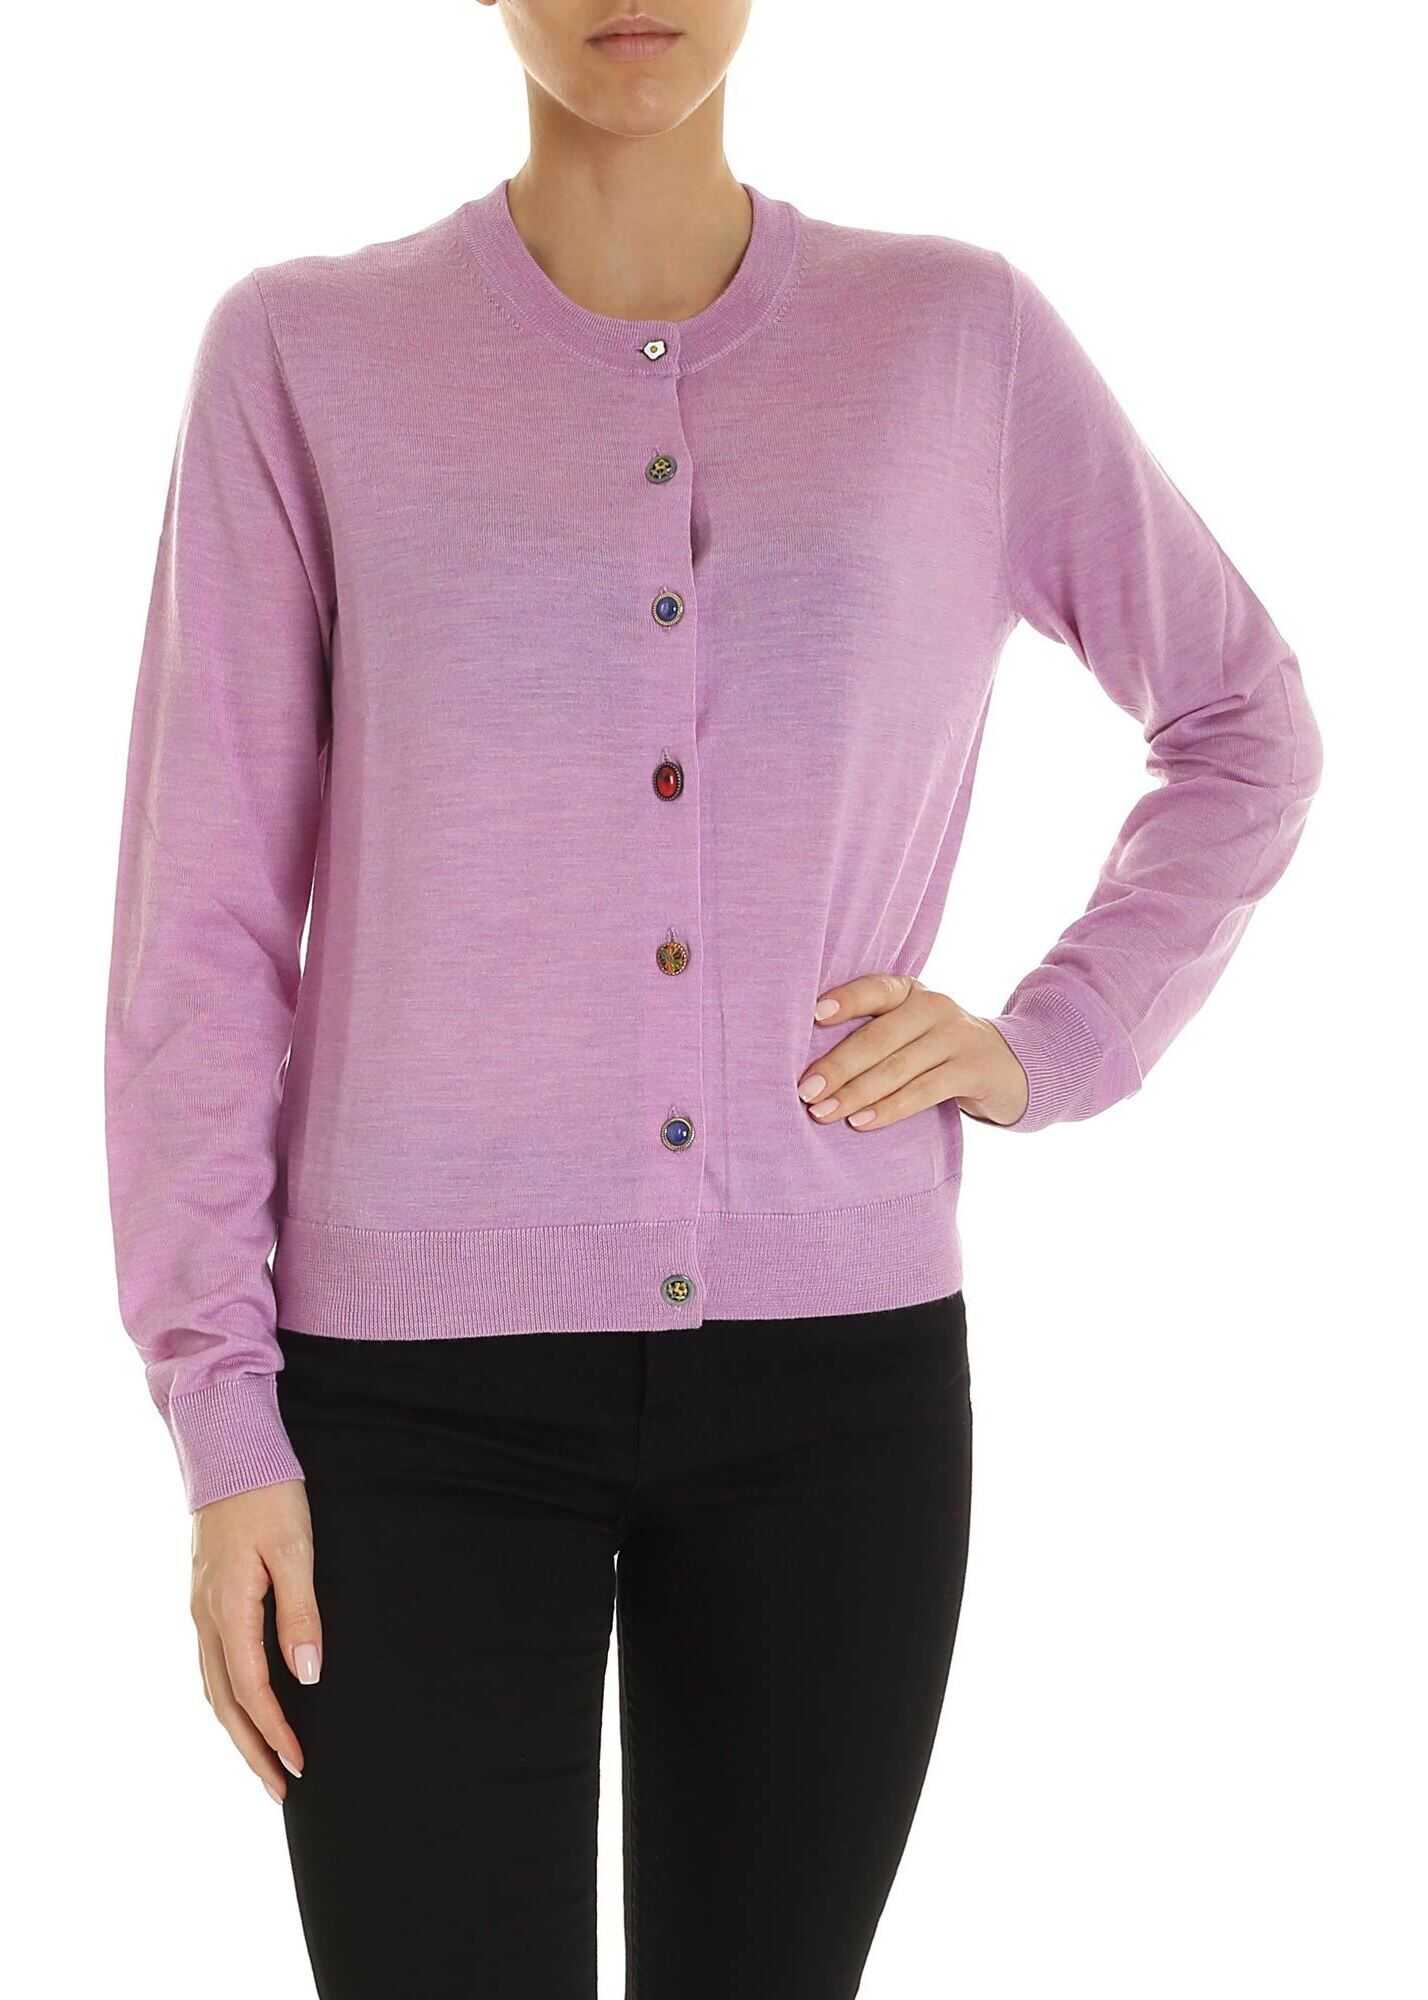 Unpaired Buttons Cardigan In Lilac thumbnail